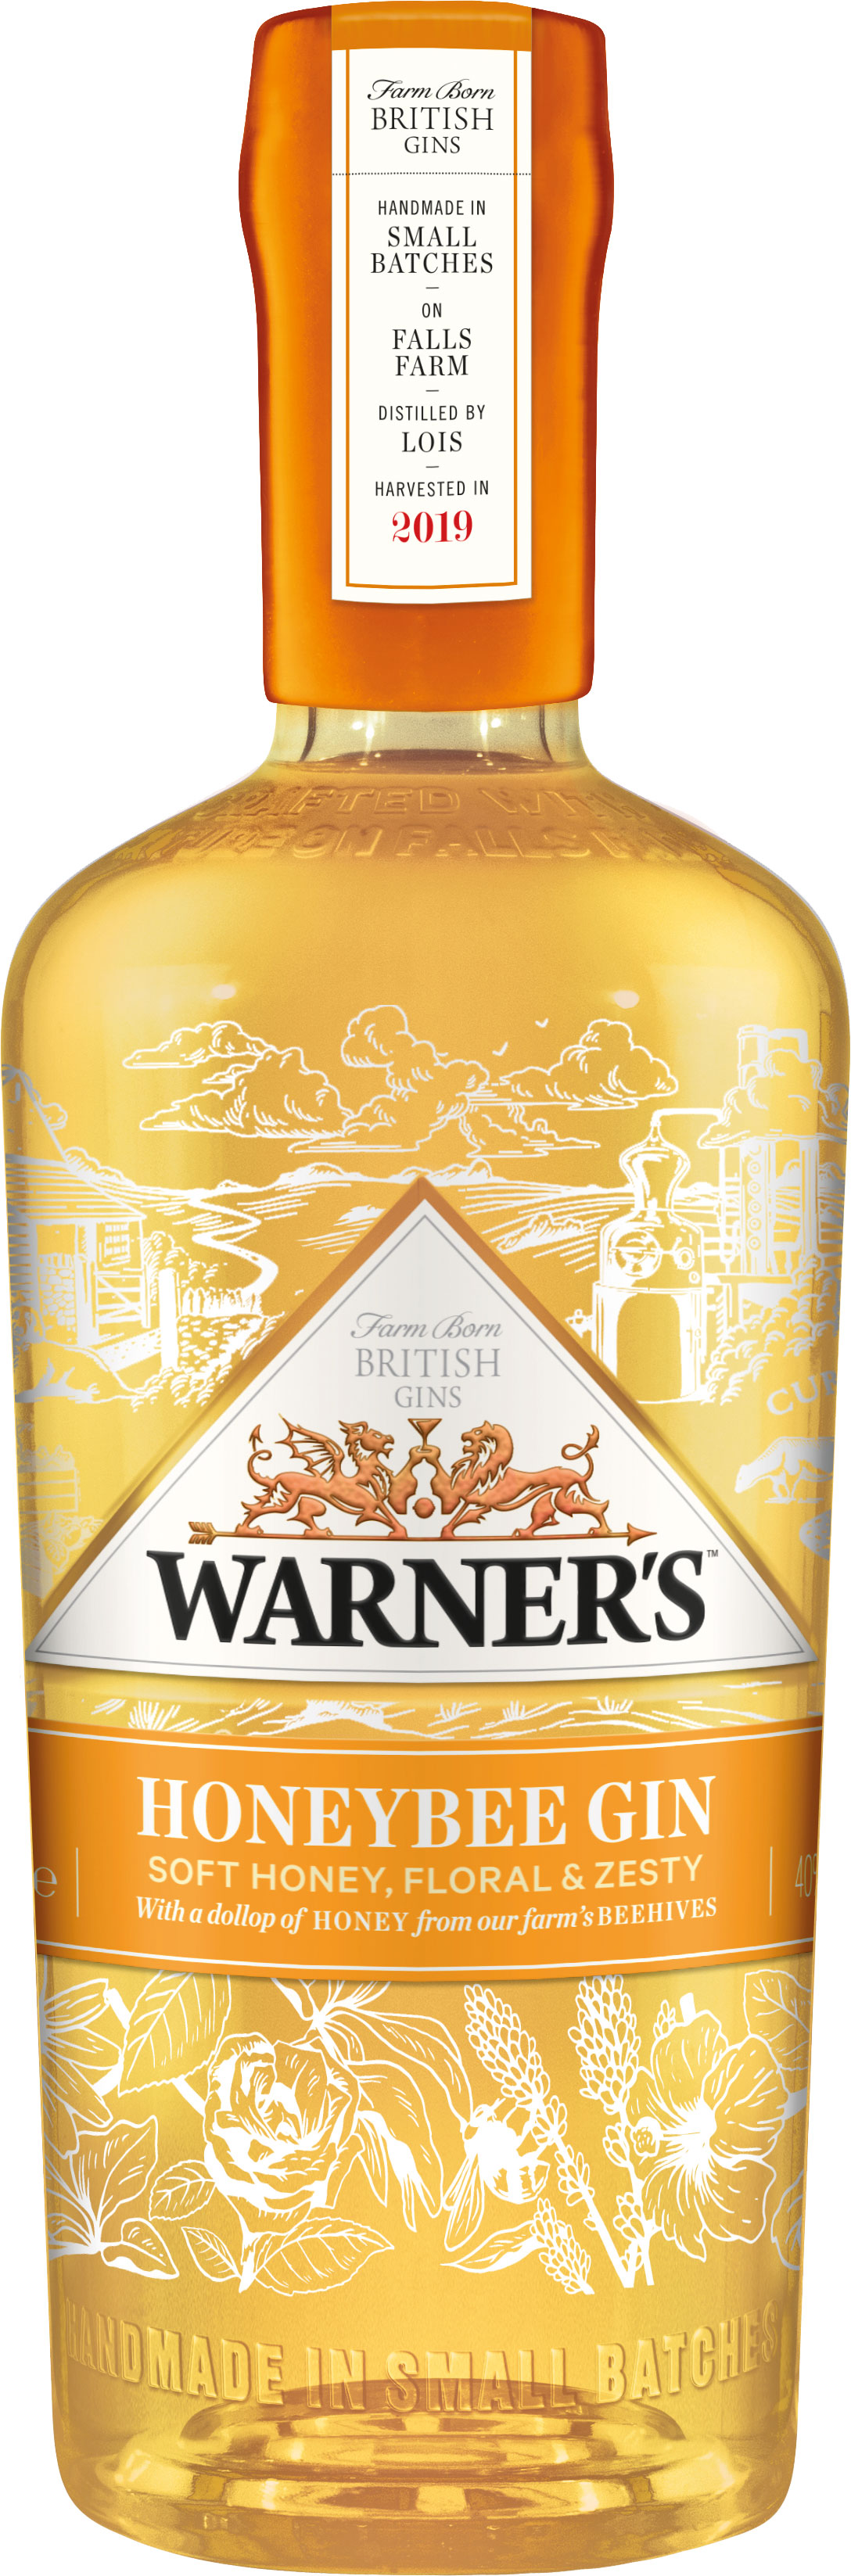 Warner Edwards - Honeybee Gin 70cl Bottle